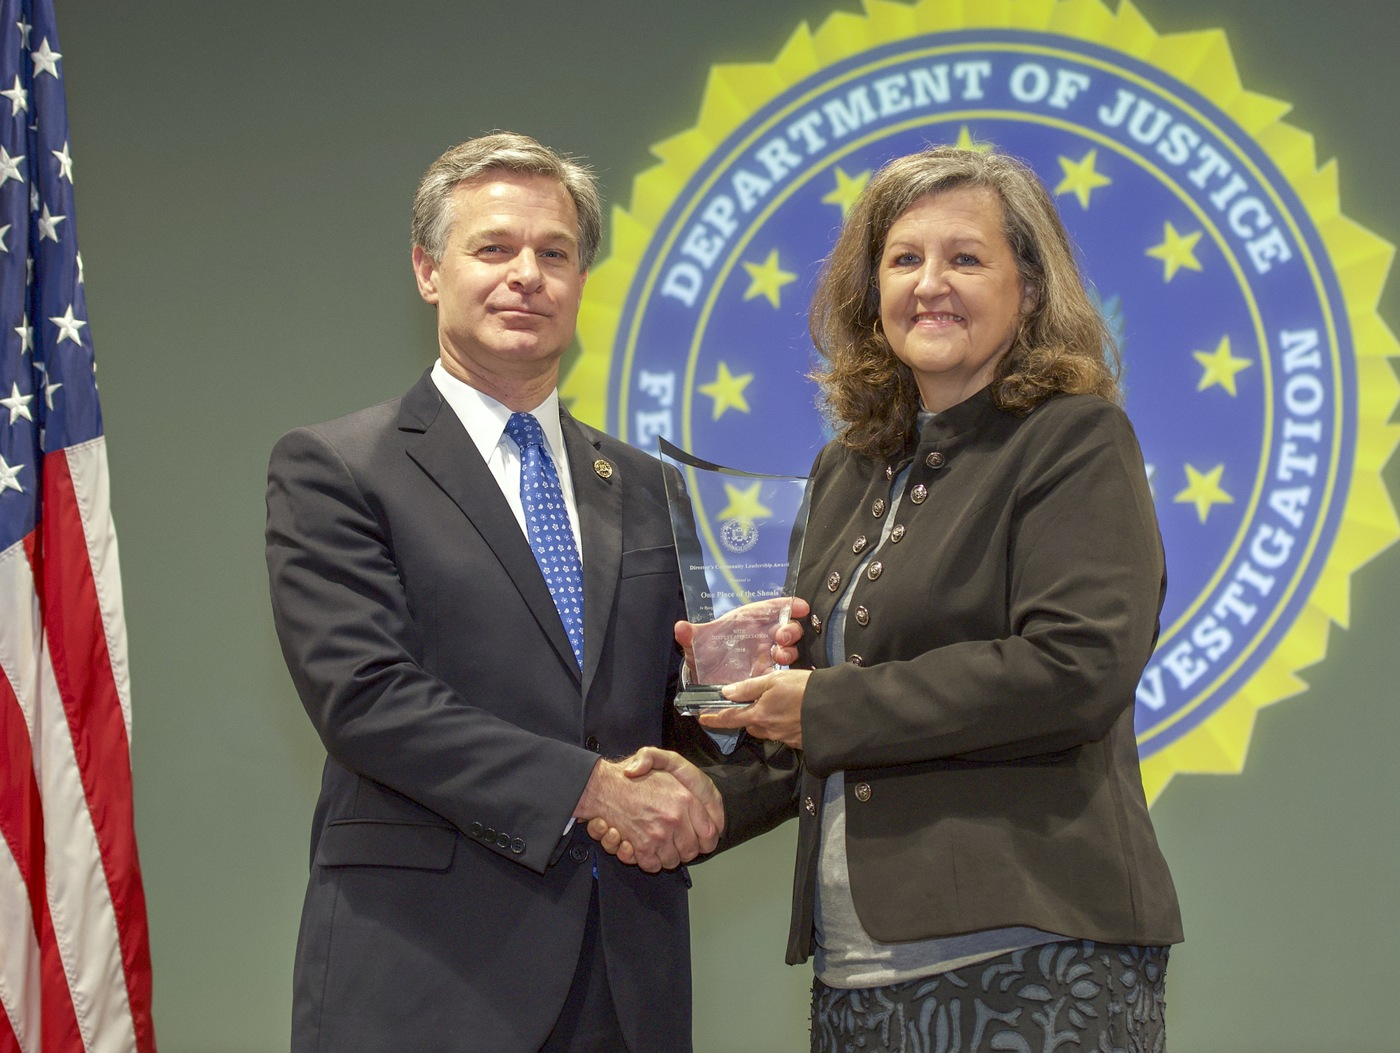 FBI Director Christopher Wray presents Birmingham Division recipient One Place of the Shoals (represented by Elizabeth Moore) with the Director's Community Leadership Award (DCLA) at a ceremony at FBI Headquarters on May 3, 2019.